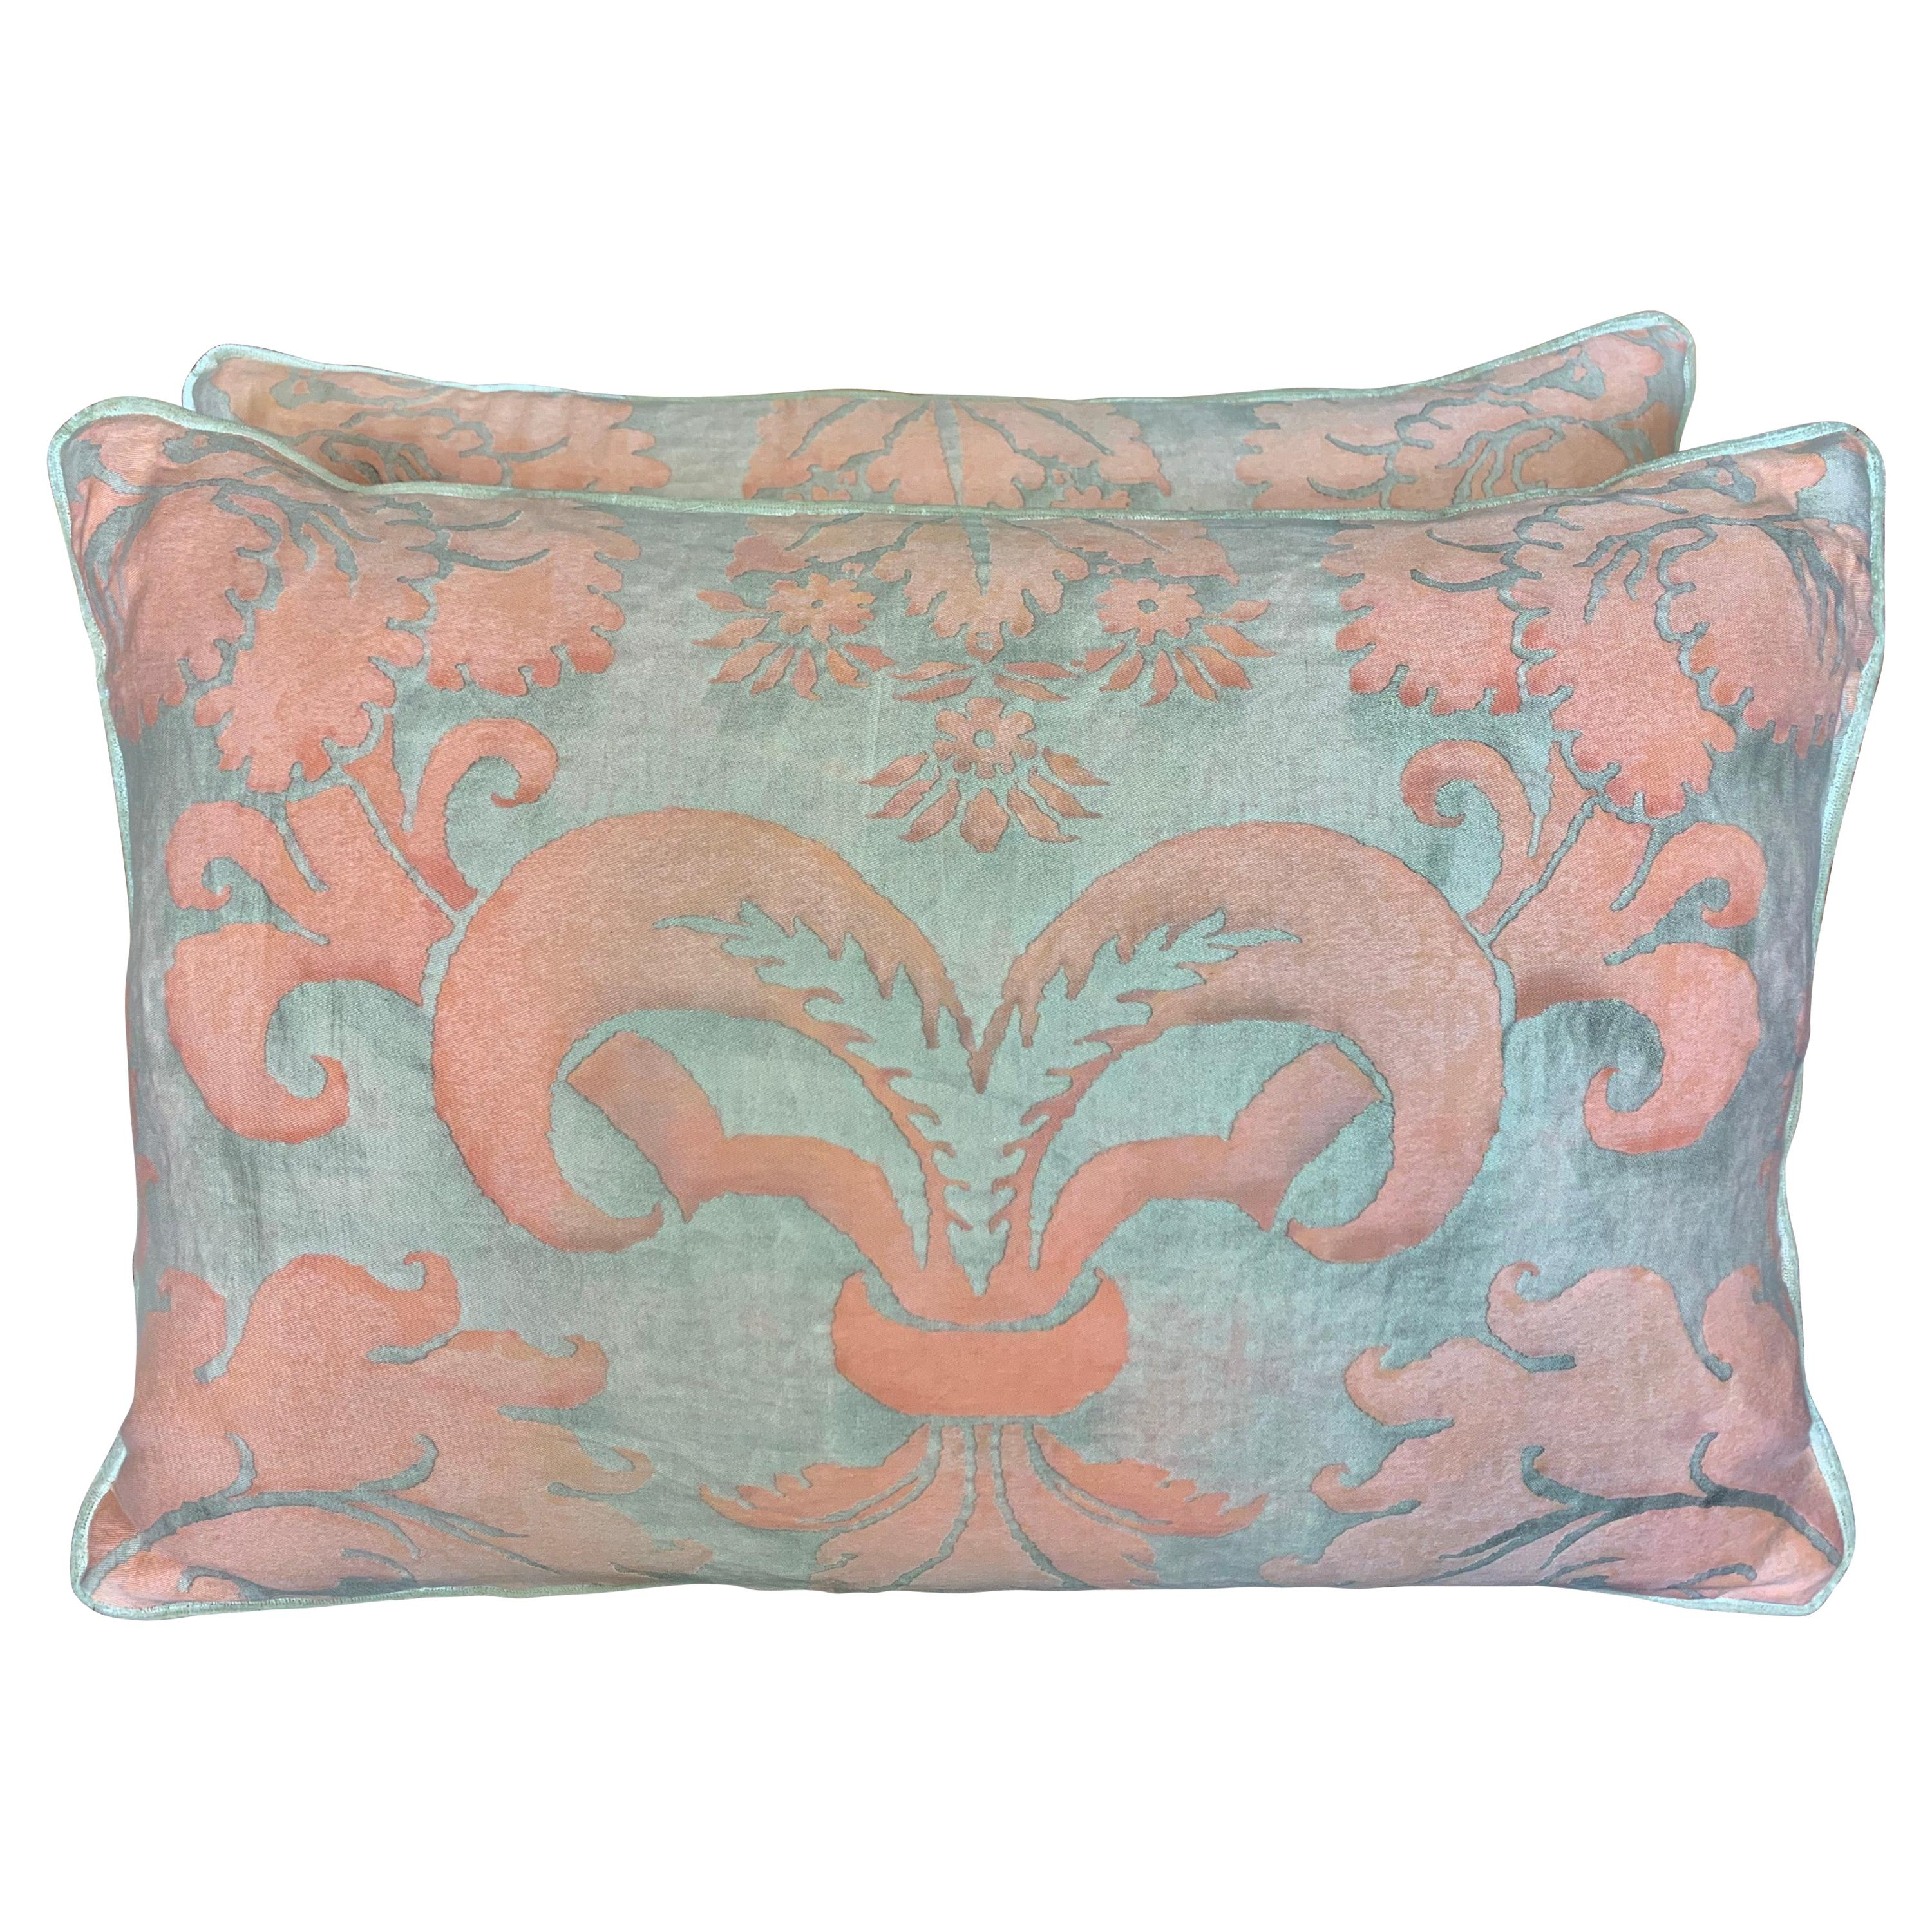 Pair of Vintage Glicine Patterned Fortuny Textile Pillows